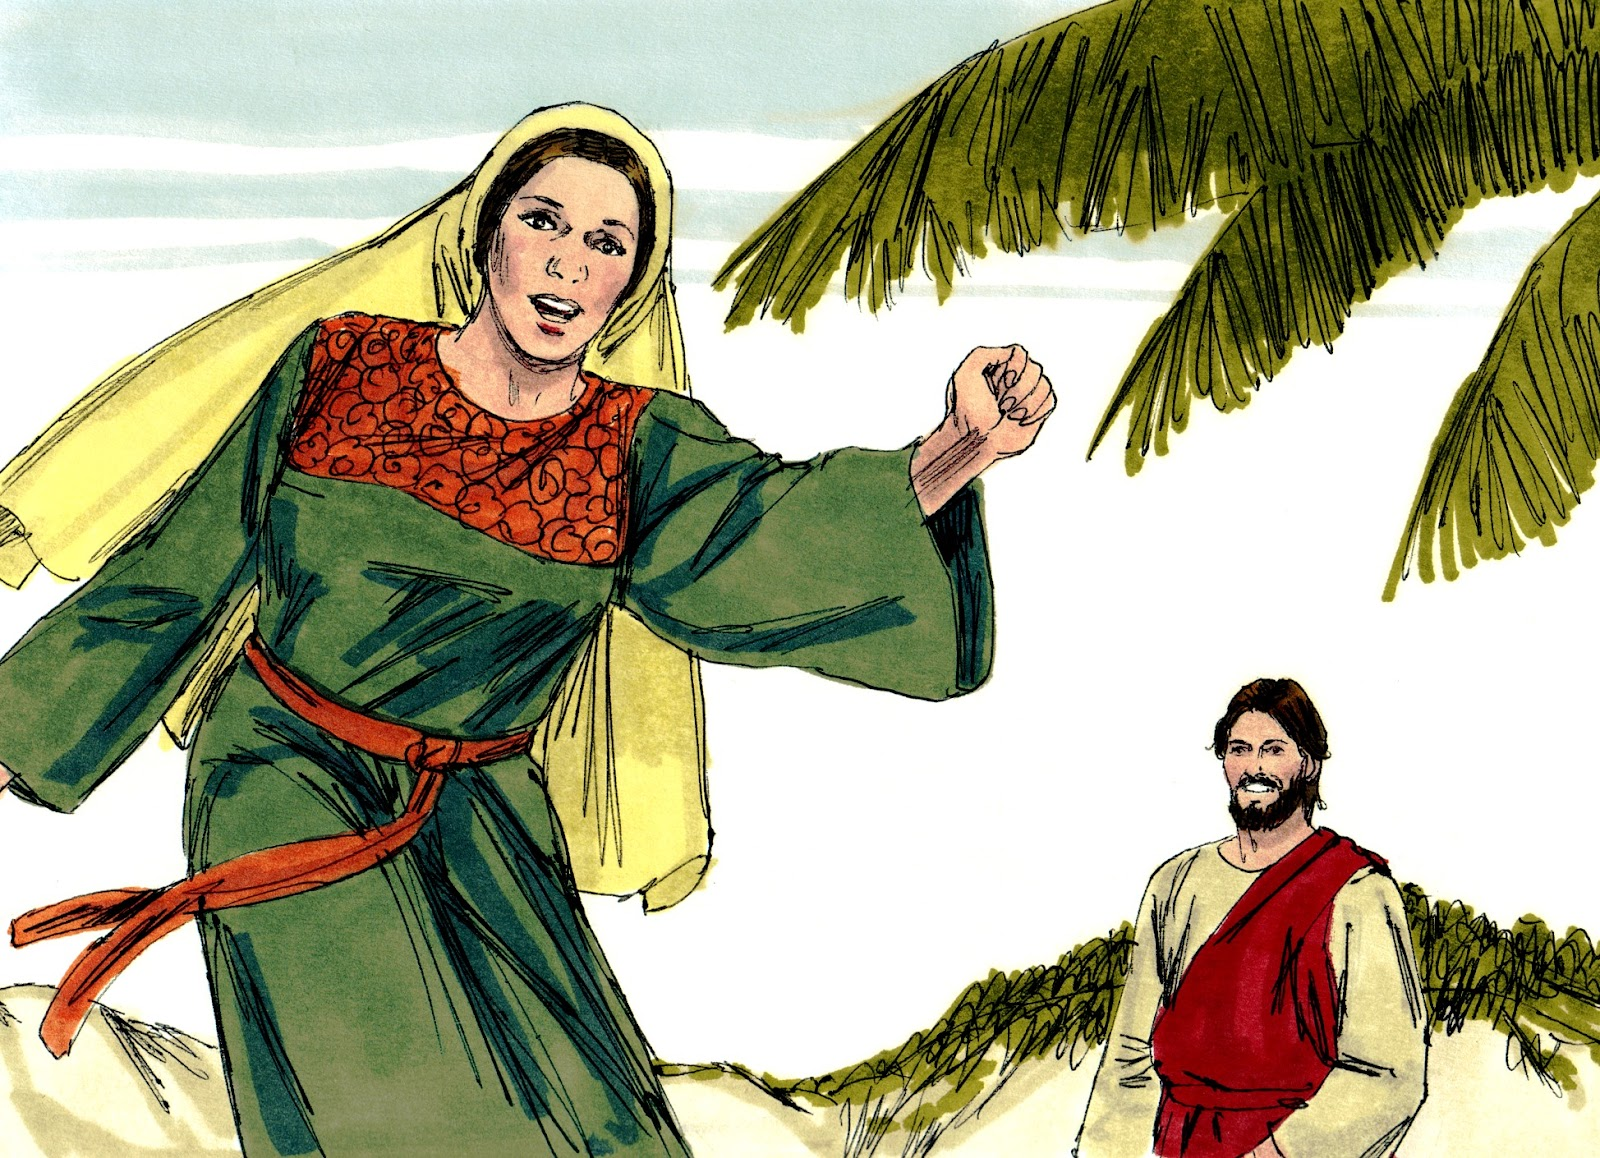 the samaritan woman Chapter 4 1  now when jesus learned that the pharisees had heard that jesus was making and baptizing more disciples than john 2 (although jesus himself was not baptizing, just his disciples),  3 he left judea and returned to galilee the samaritan woman 4 he had to  pass through samaria 5 so he came to a town of samaria called sychar,  near the plot of land that jacob had given to his.